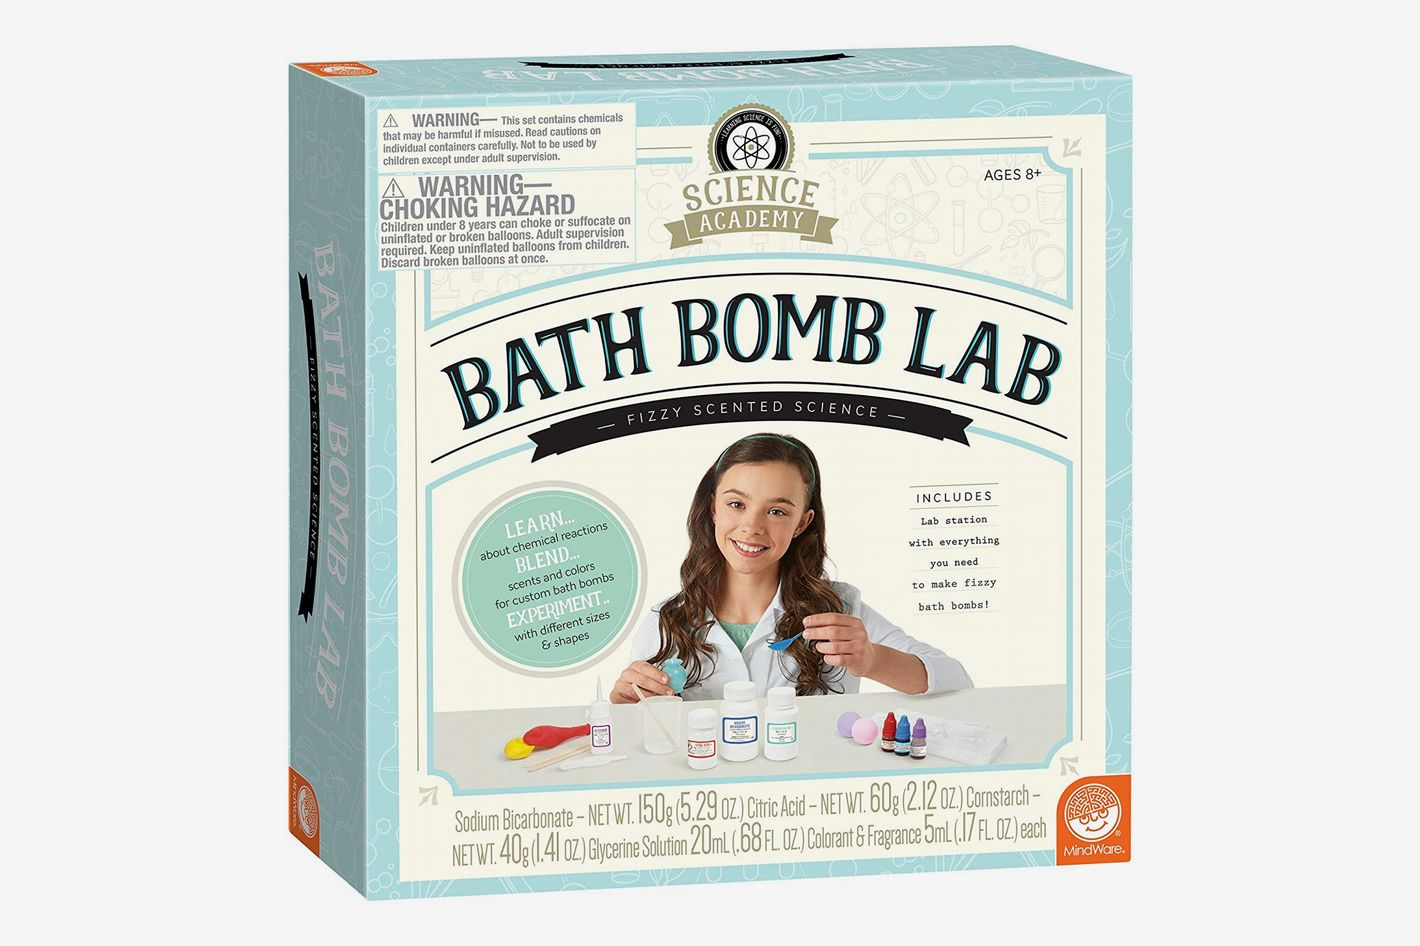 MindWare Science Academy Bath Bomb Lab